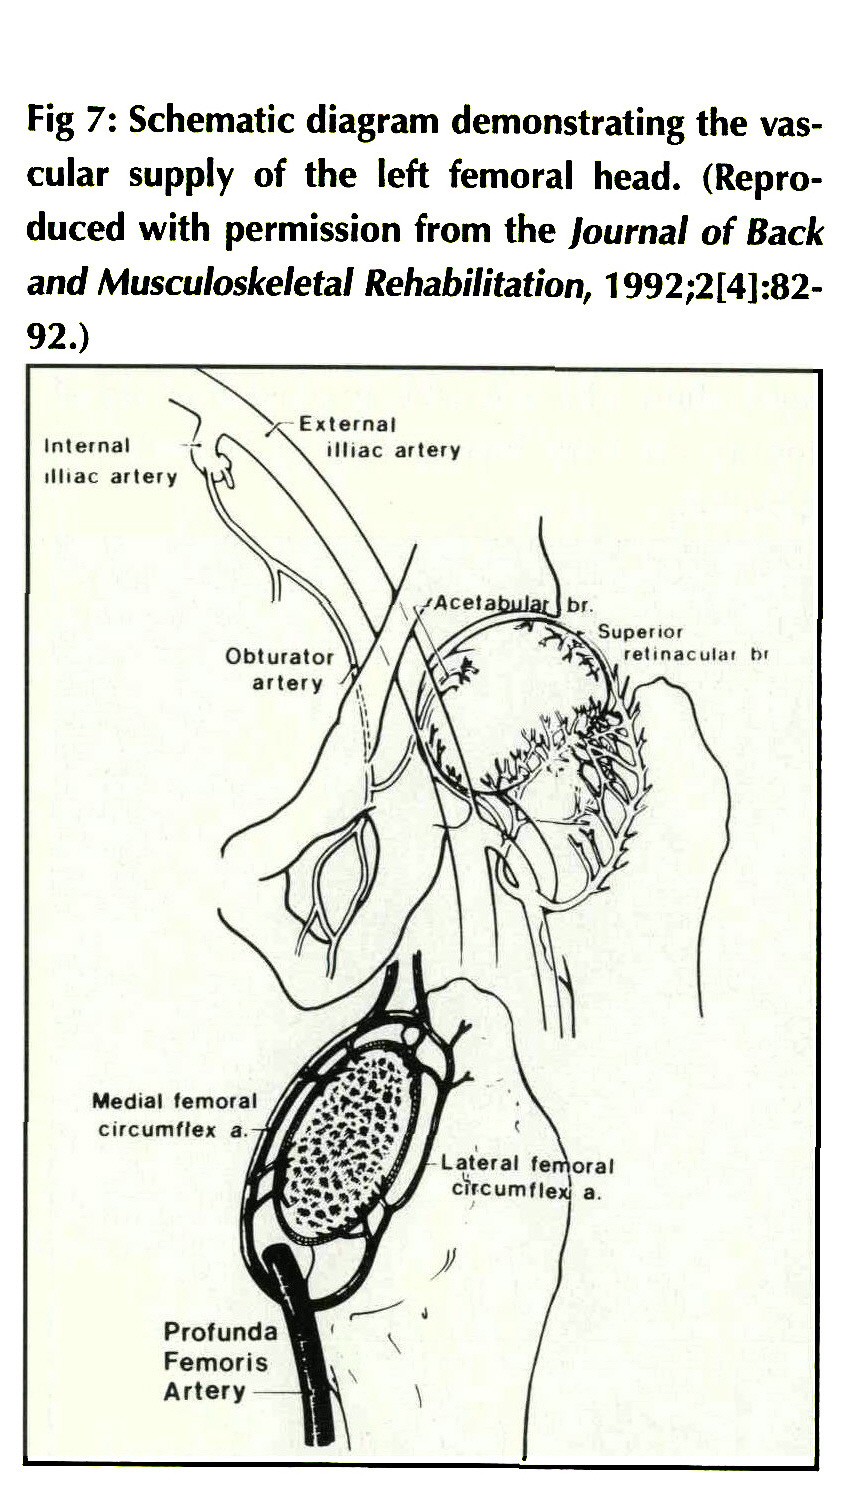 medium resolution of fig 7 schematic diagram demonstrating the vascular supply of the left femoral head